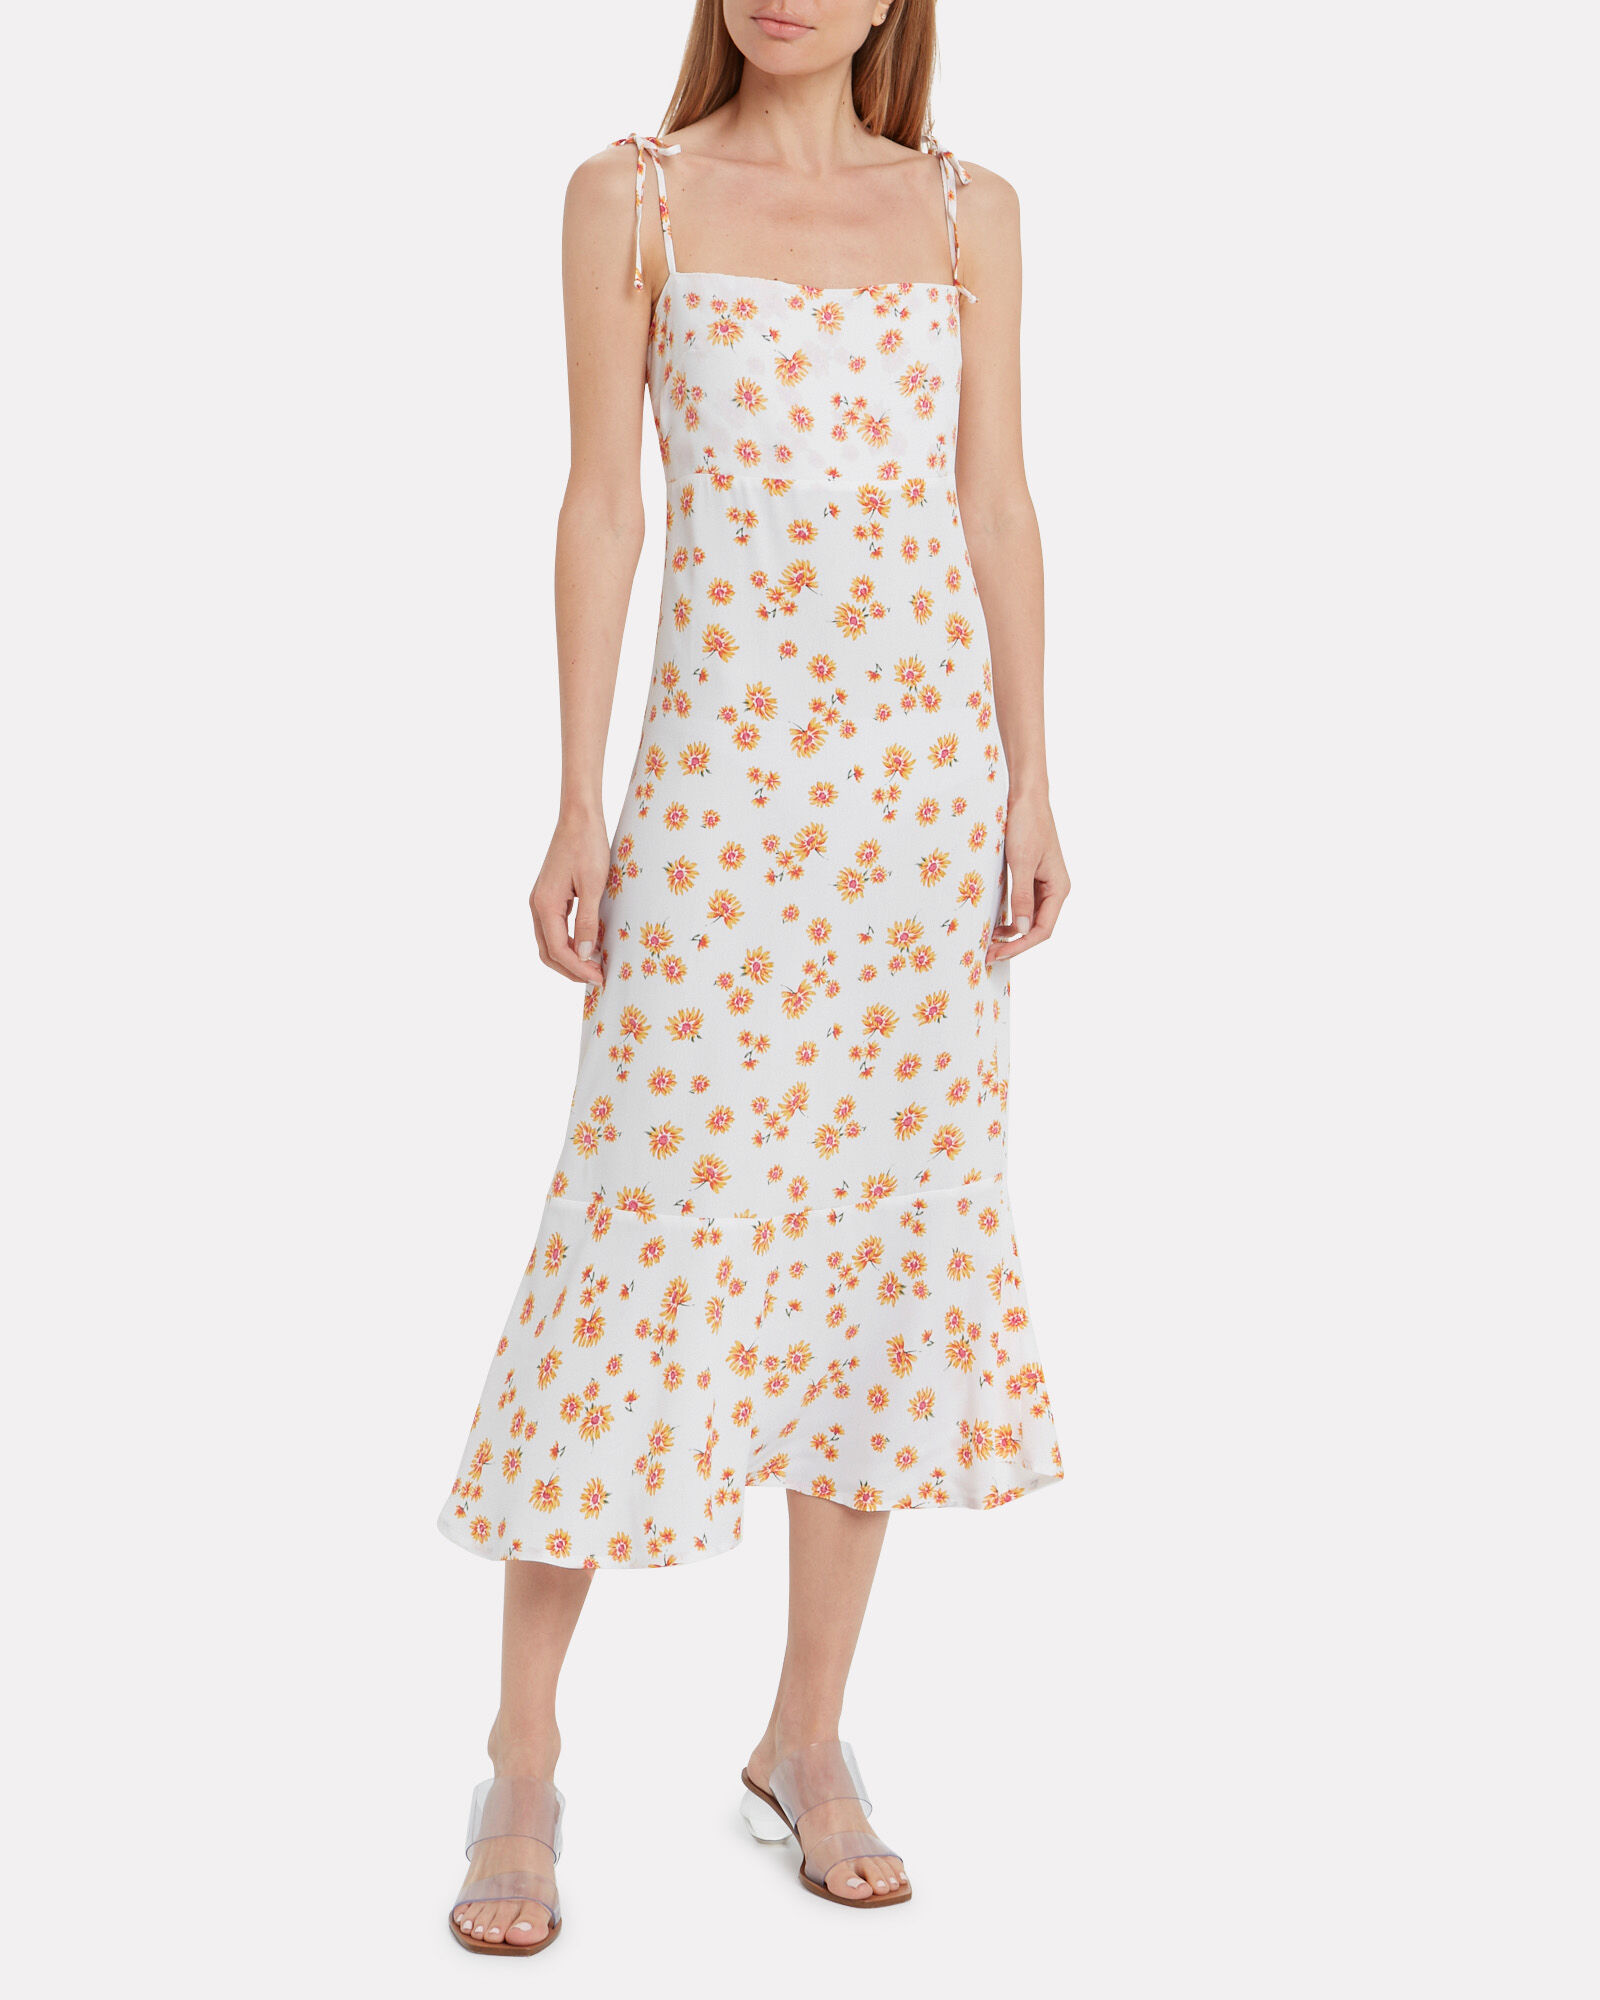 Mace Daisy Slip Dress, MULTI, hi-res